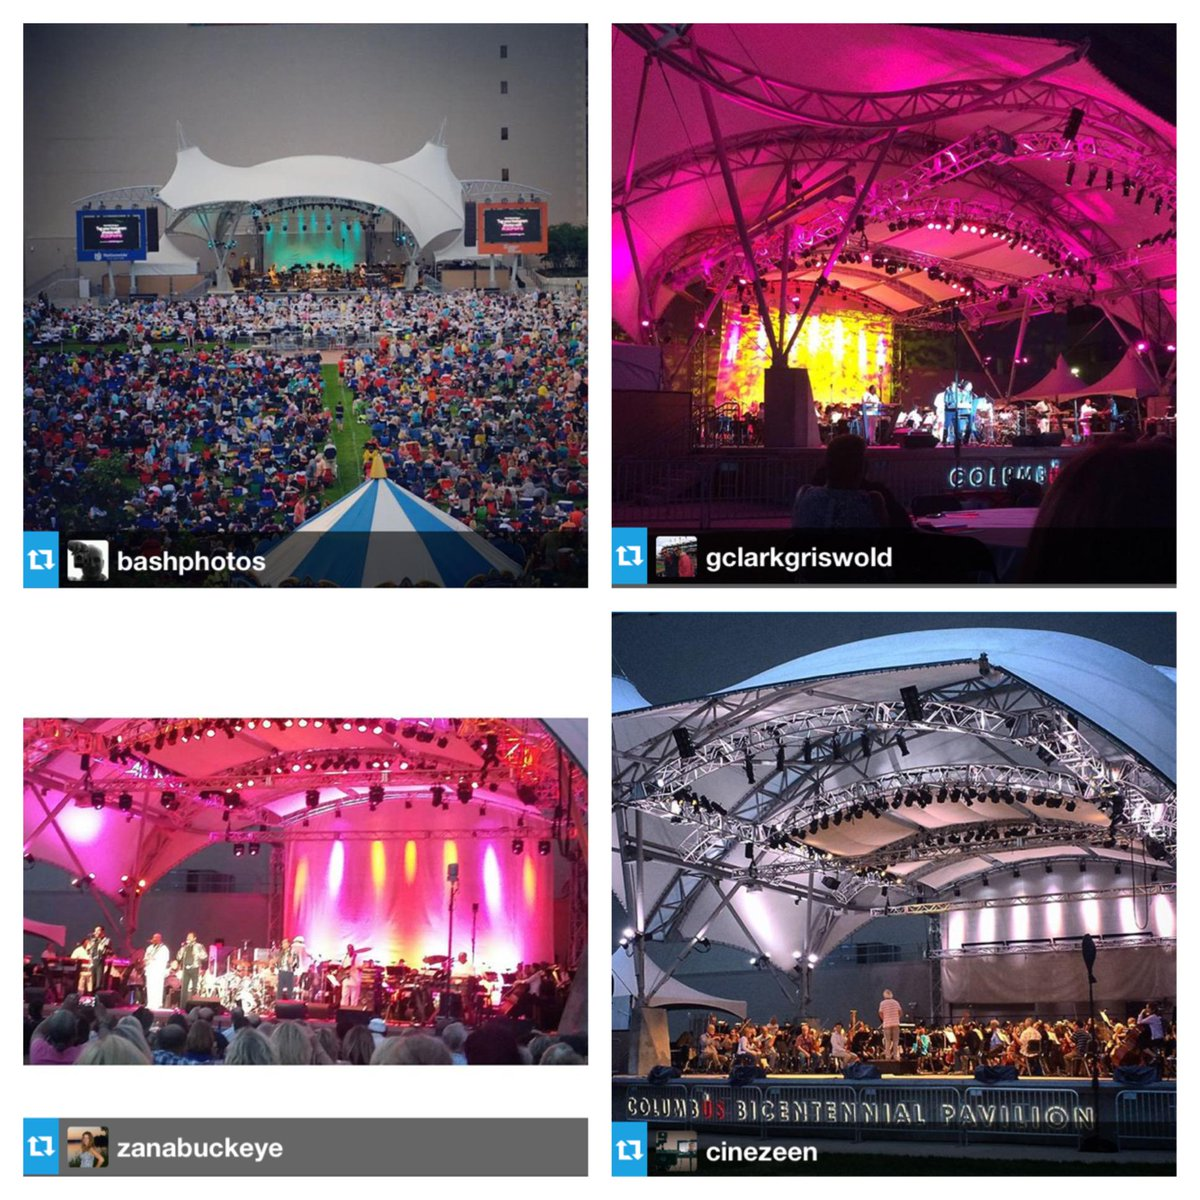 Saturday was the perfect night for a concert under the stars. Just a few crowd photos from the awesome evening! http://t.co/0wQ20MIvZ8